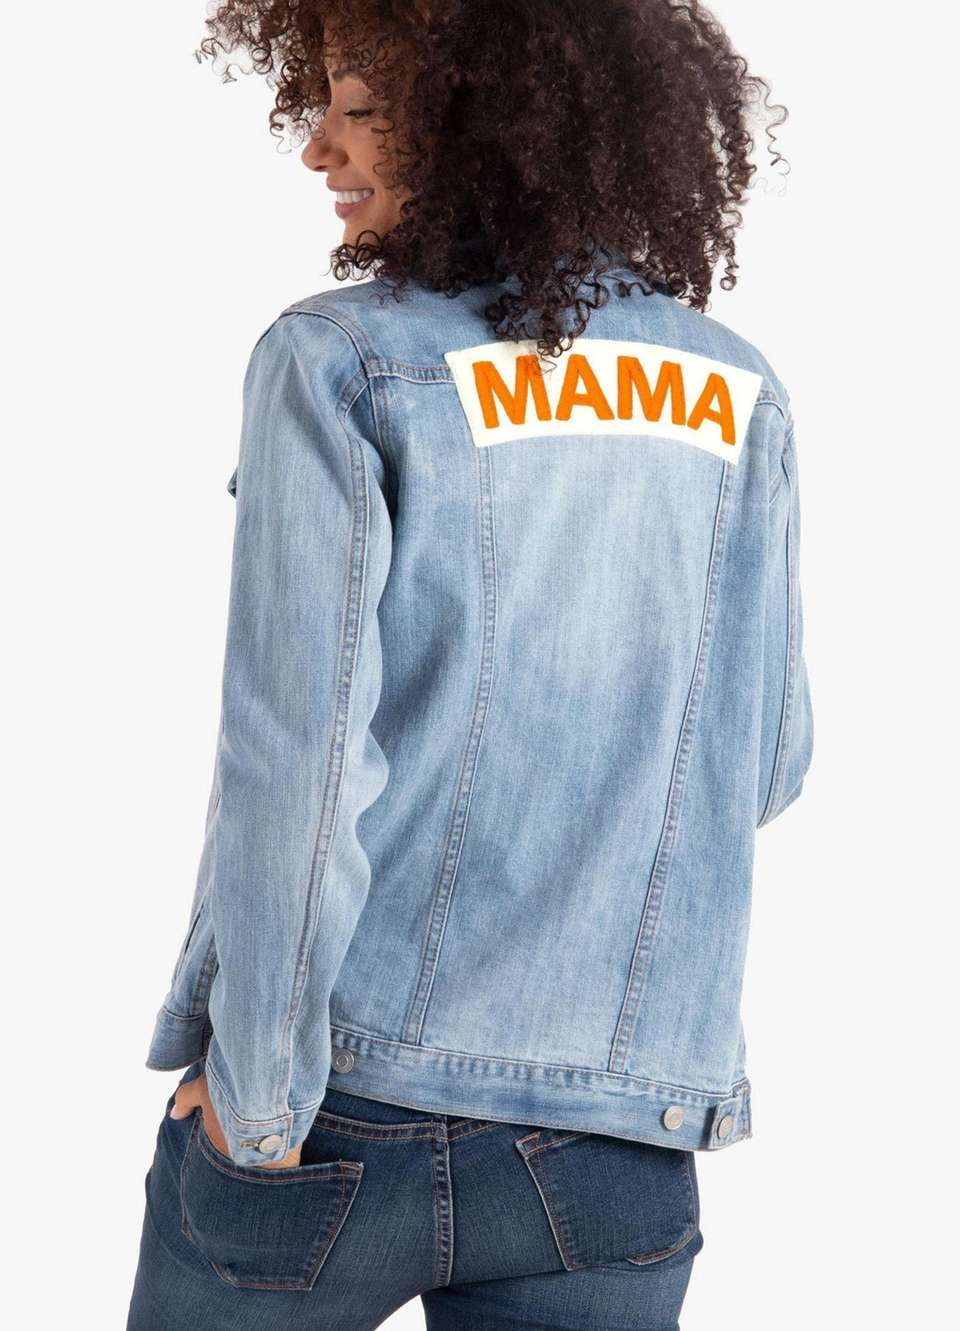 Proud mamas can show off their status with